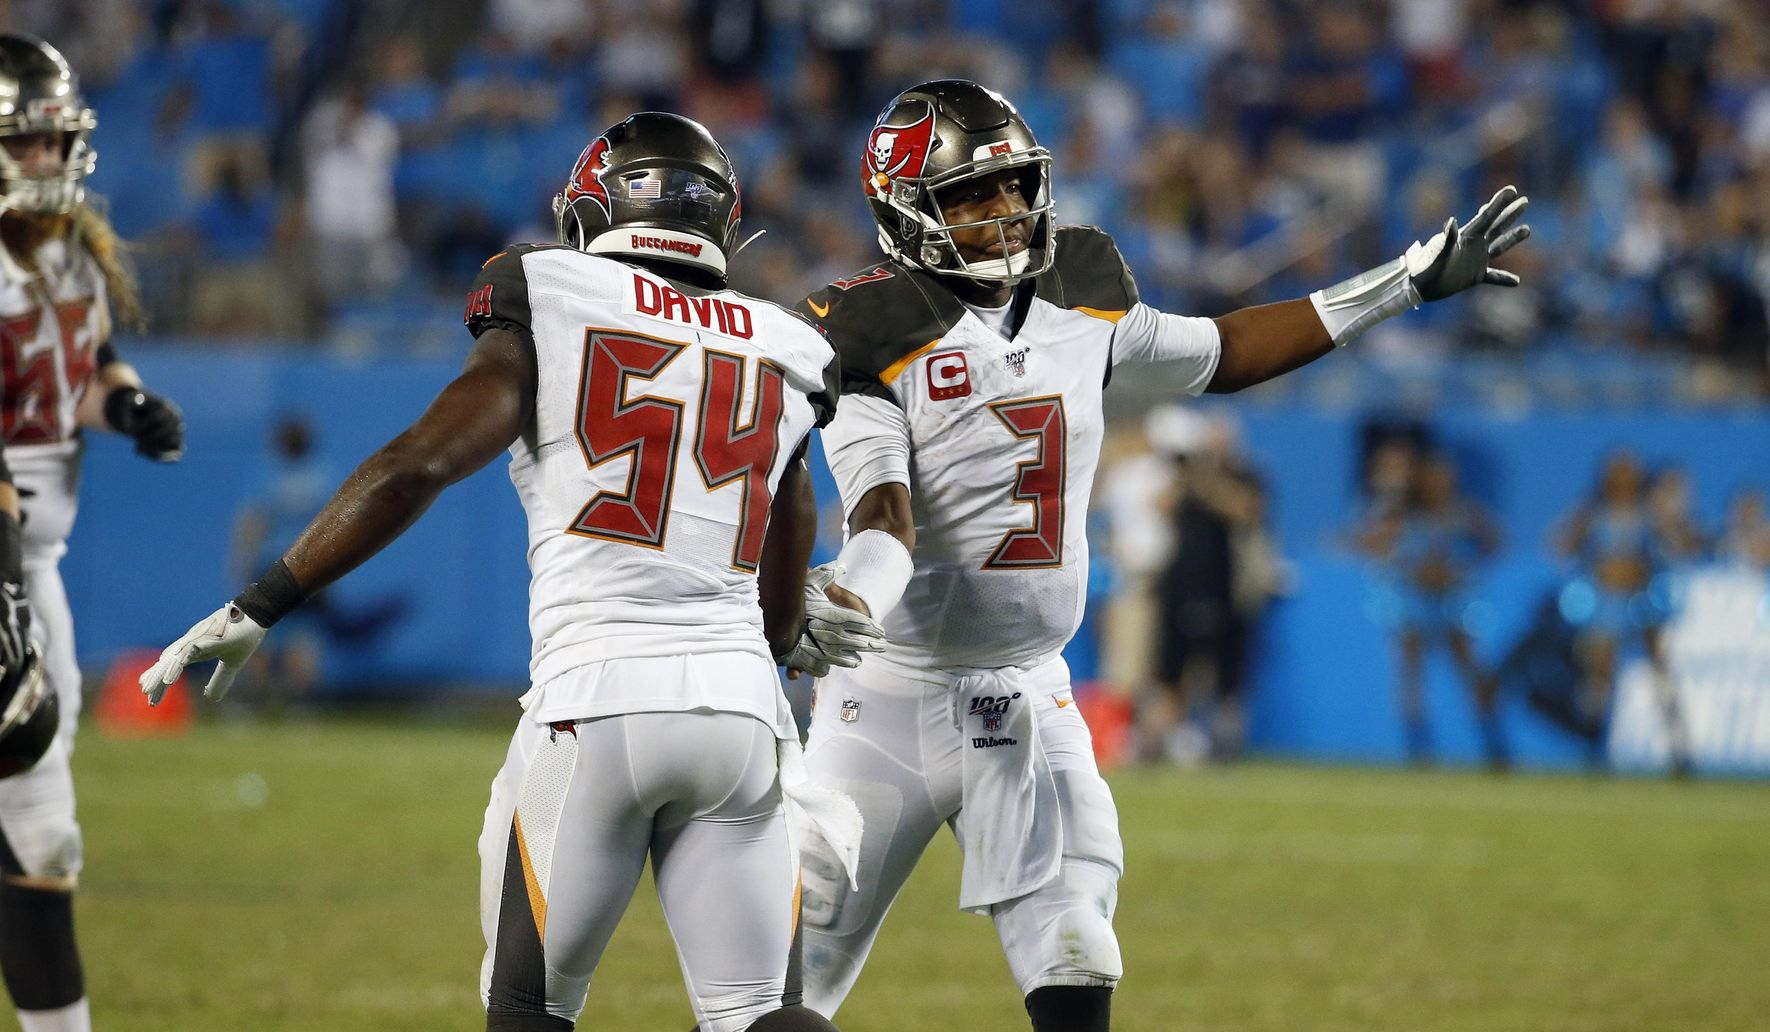 Buccaneers_panthers_football_92612_c0-157-3755-2346_s1770x1032